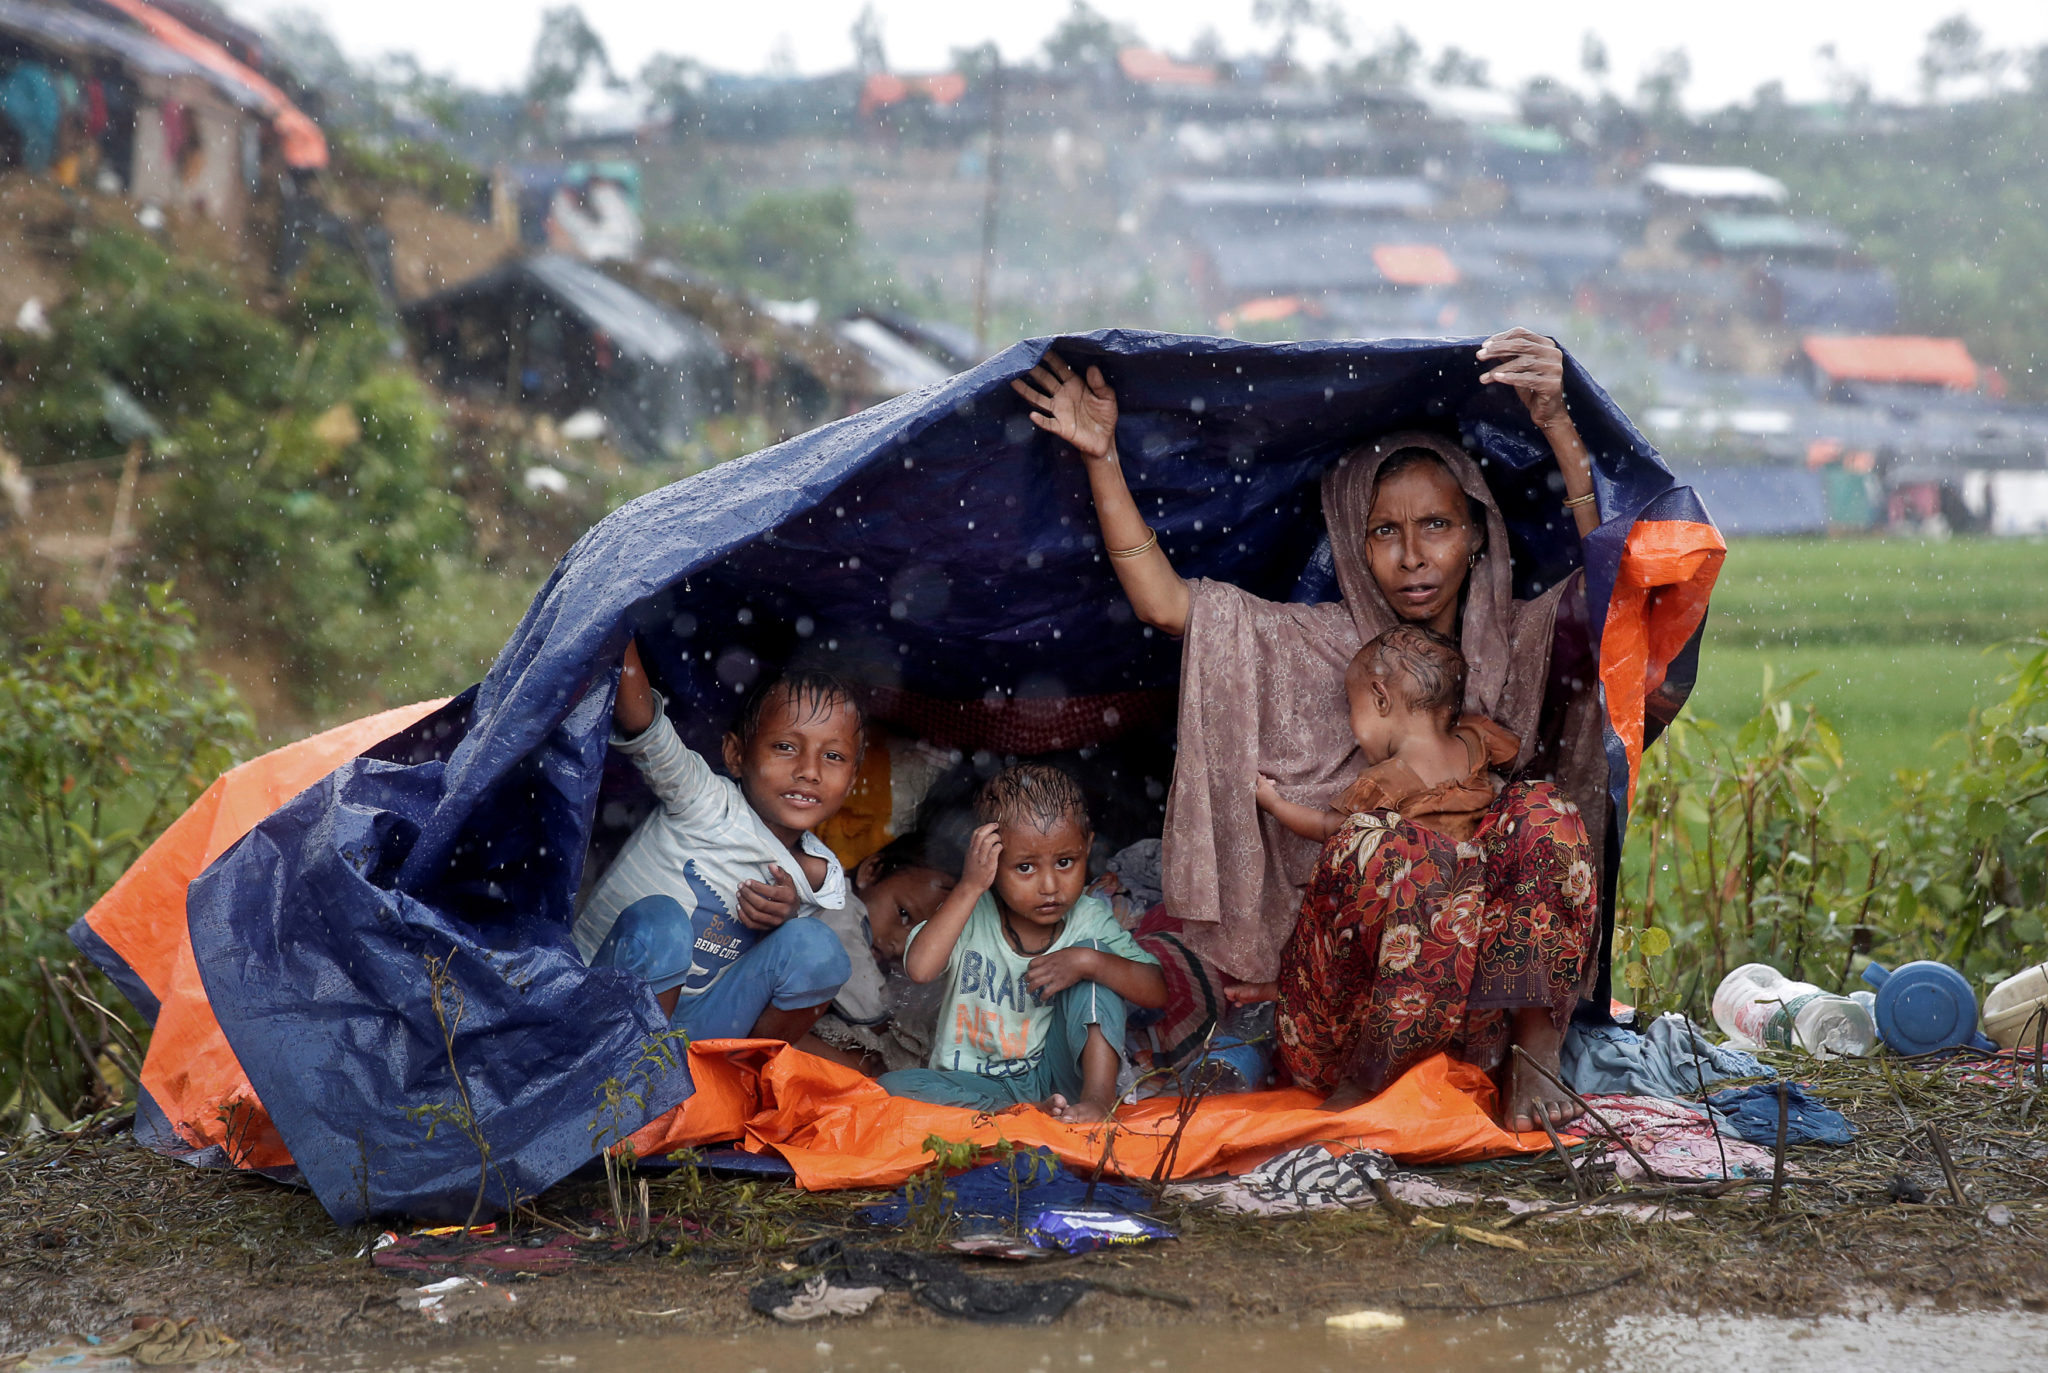 Myanmar/Bangladesh: Rohingya refugees must not be forced home to abuse and discrimination